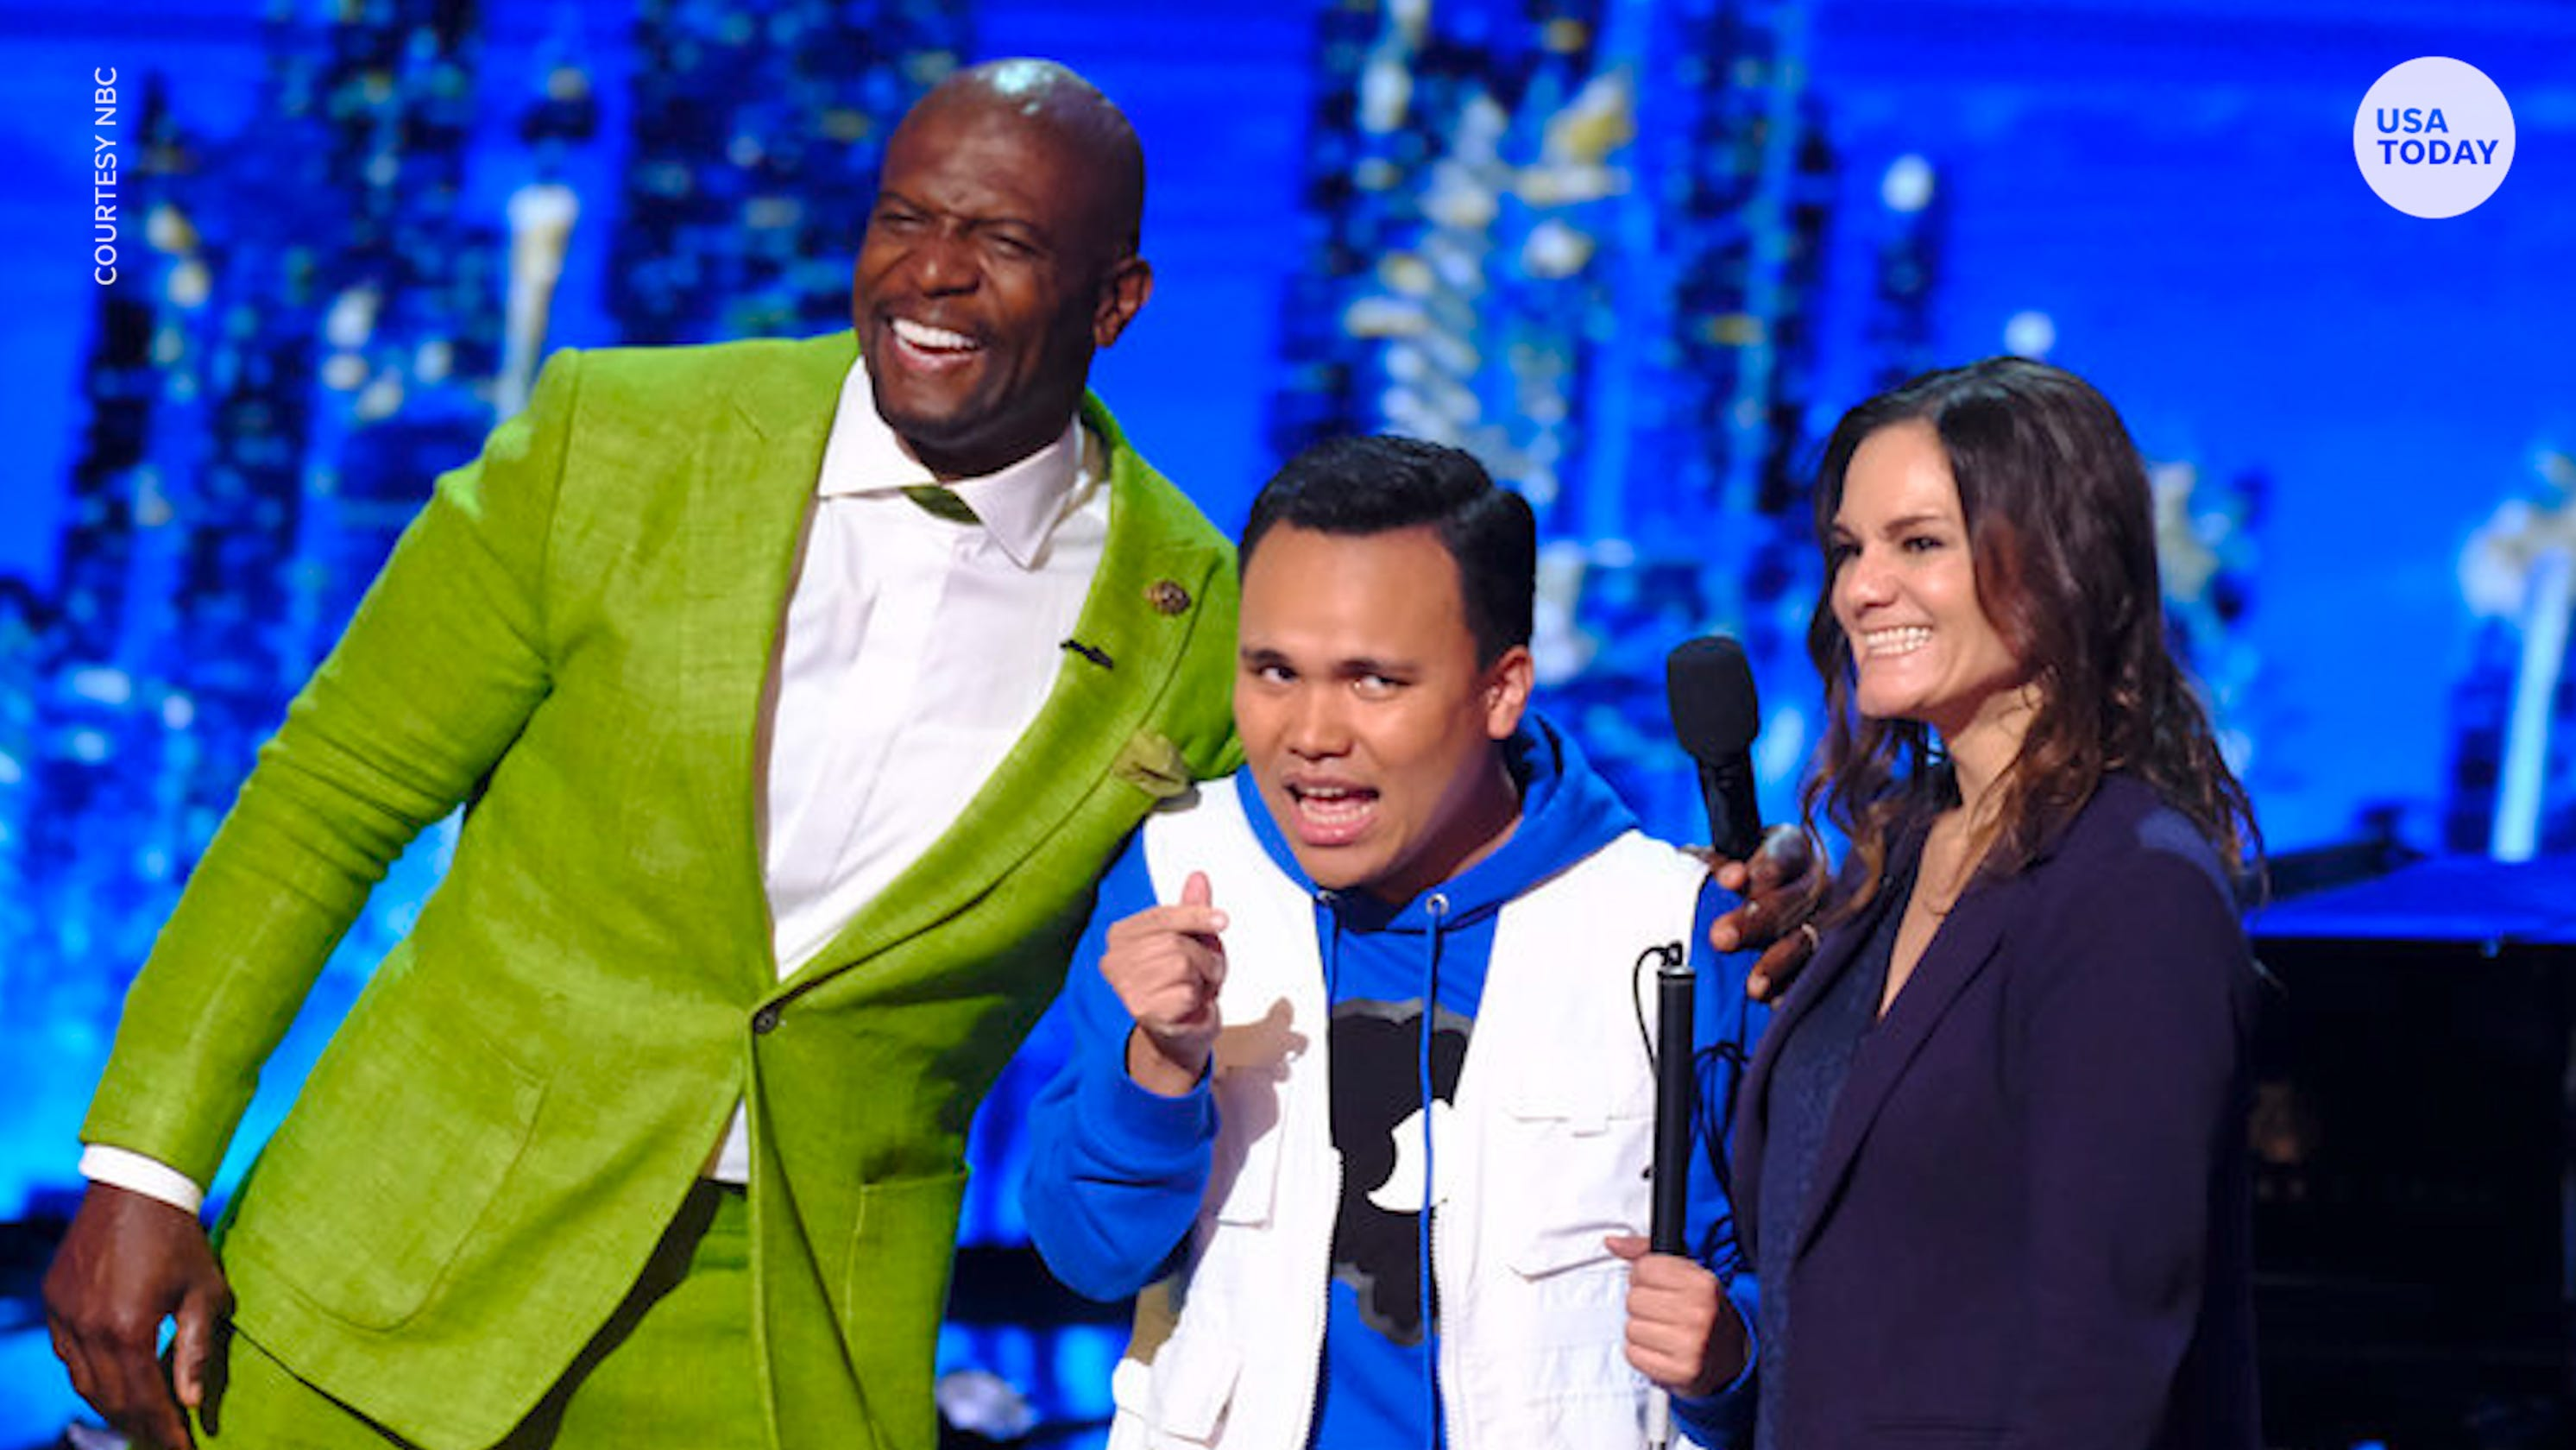 'America's Got Talent': Is Kodi Lee moving on to the semifinals? Here are the results